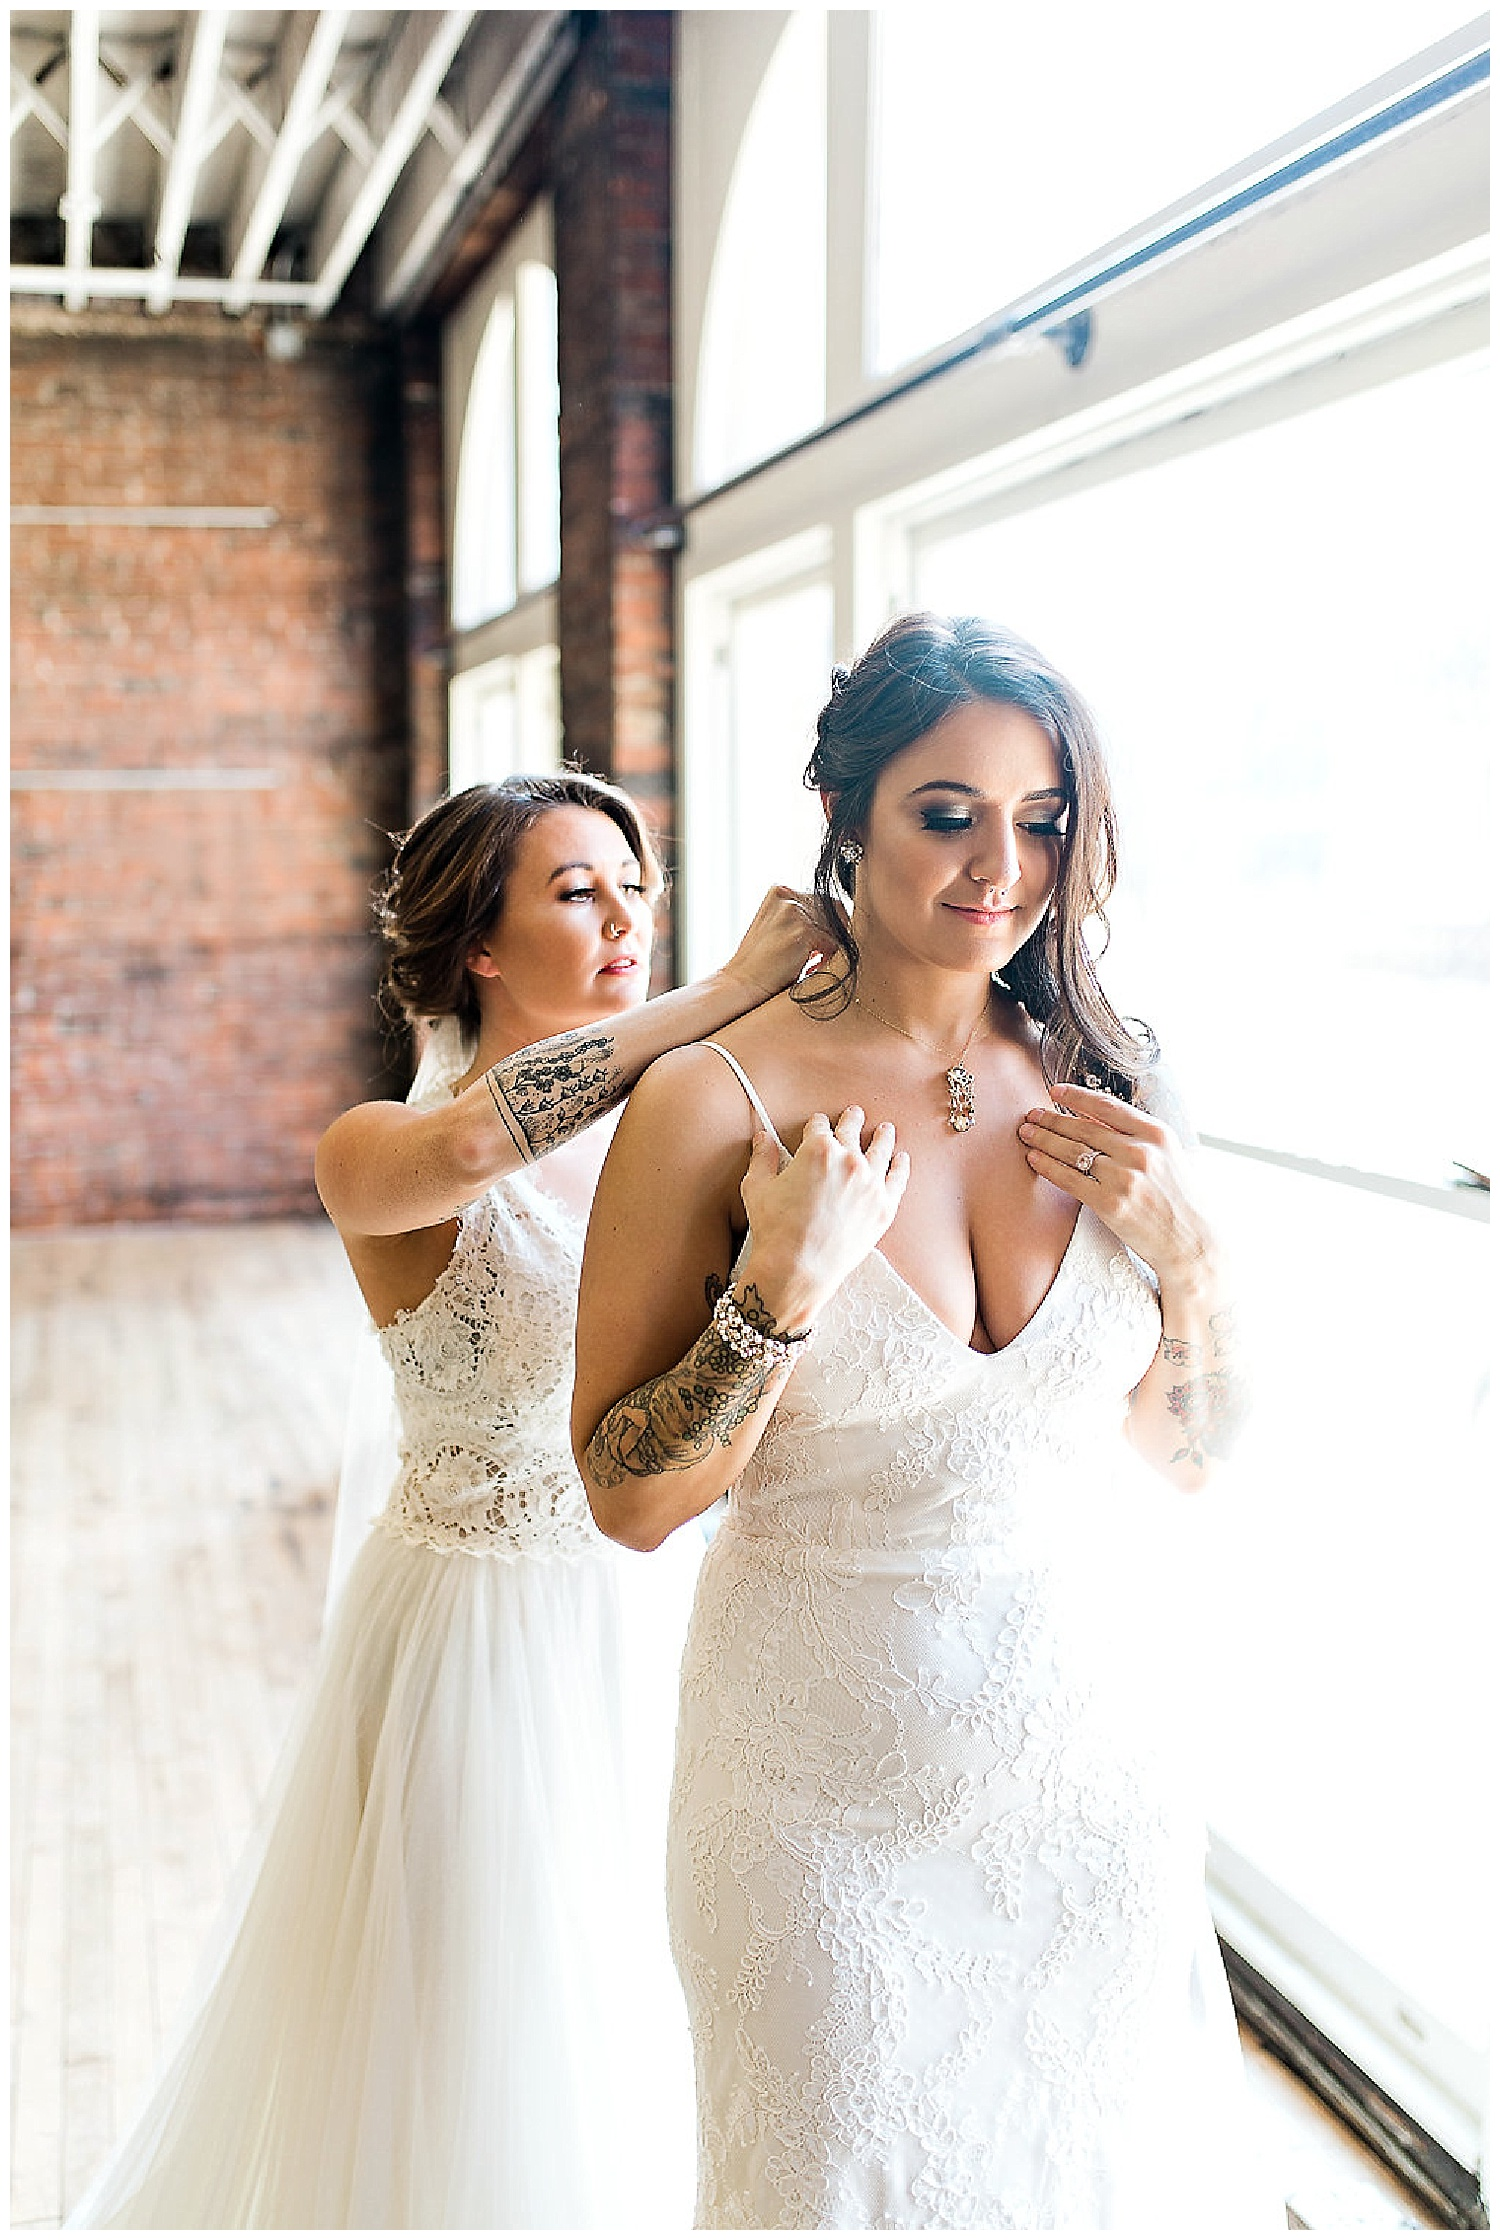 Pride Month Styled Shoot | Megan McGreevy Photography